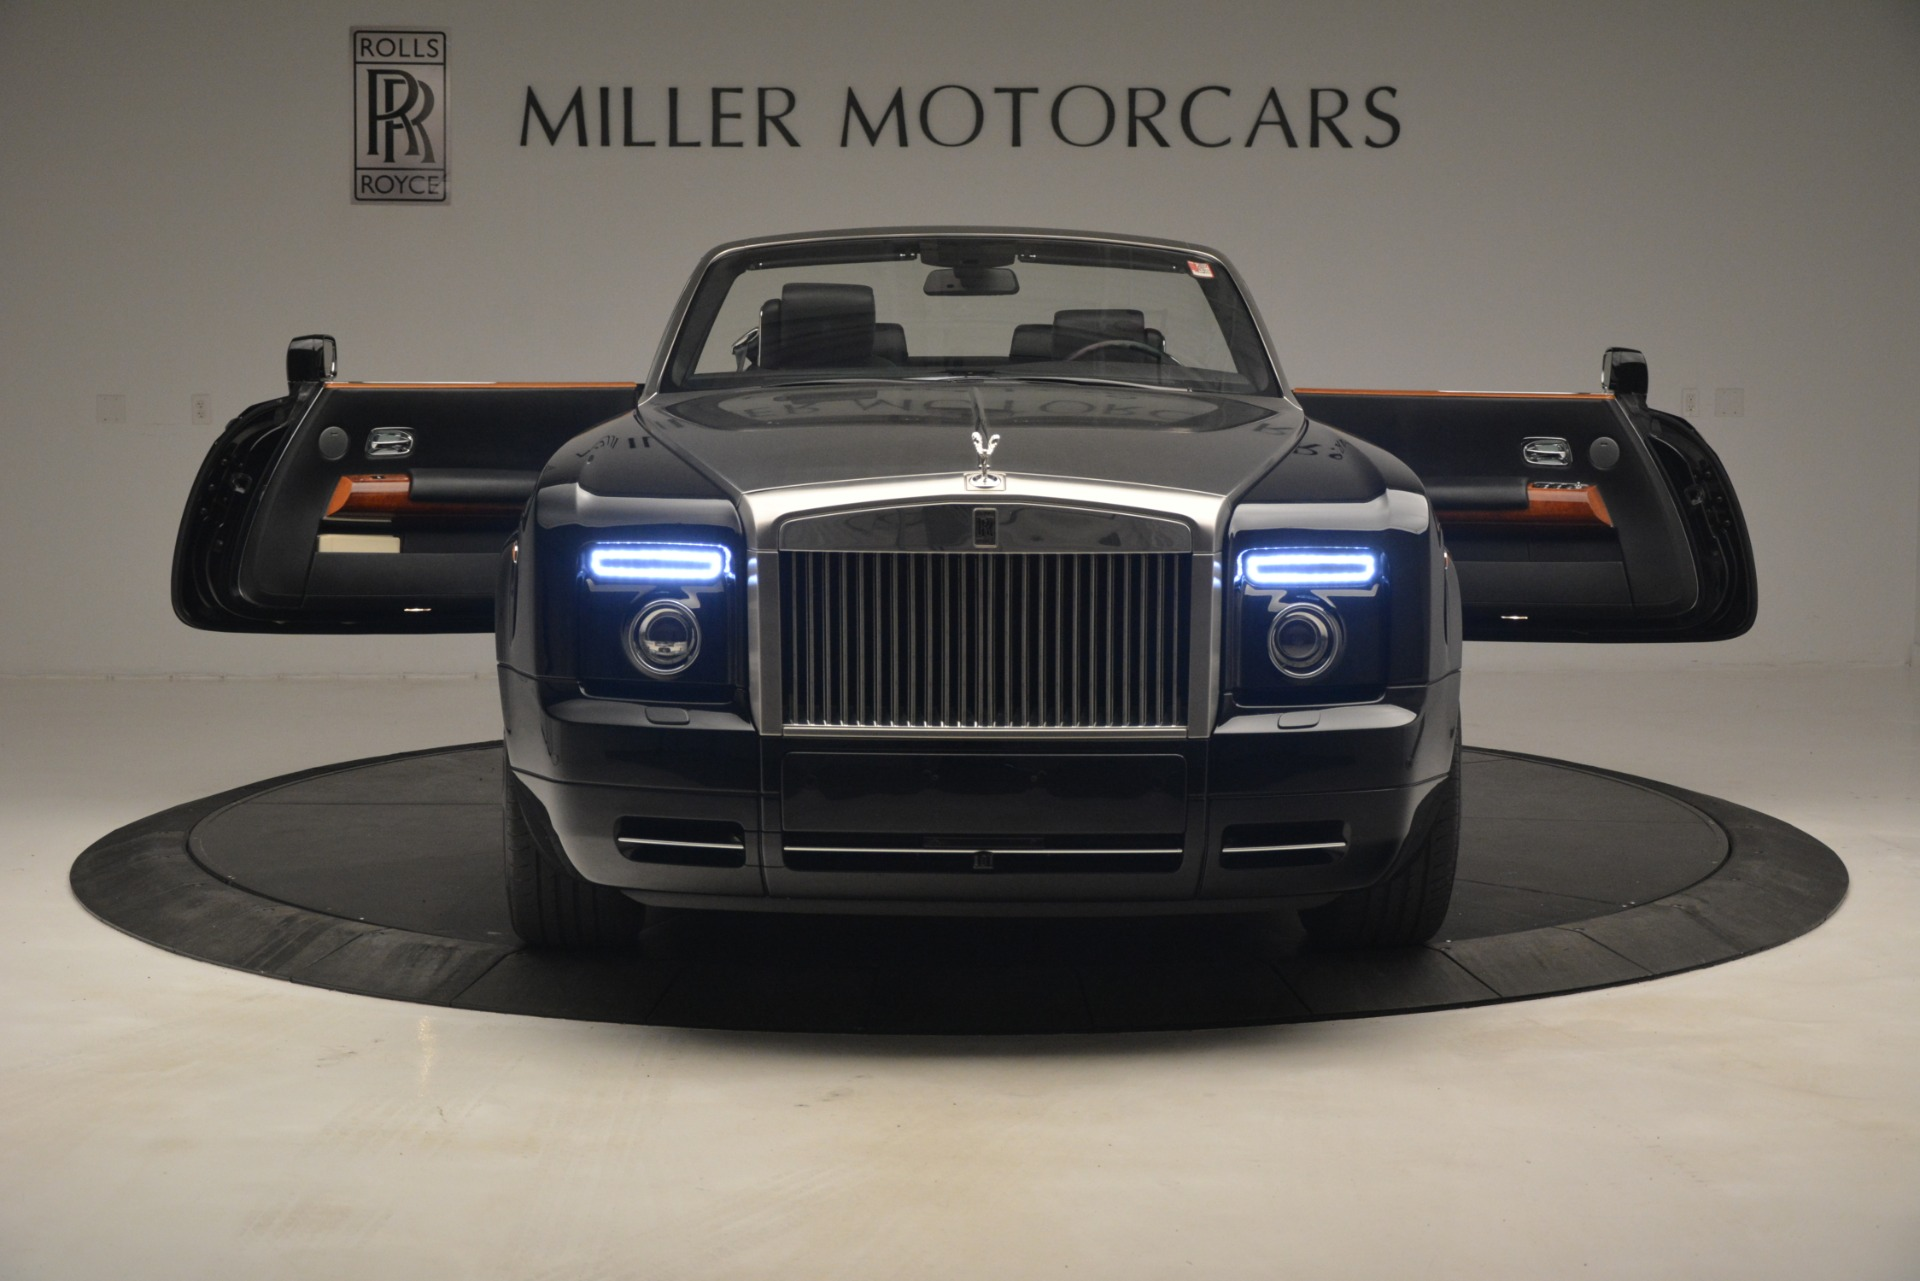 Used 2008 Rolls-Royce Phantom Drophead Coupe  For Sale In Greenwich, CT 3000_p17